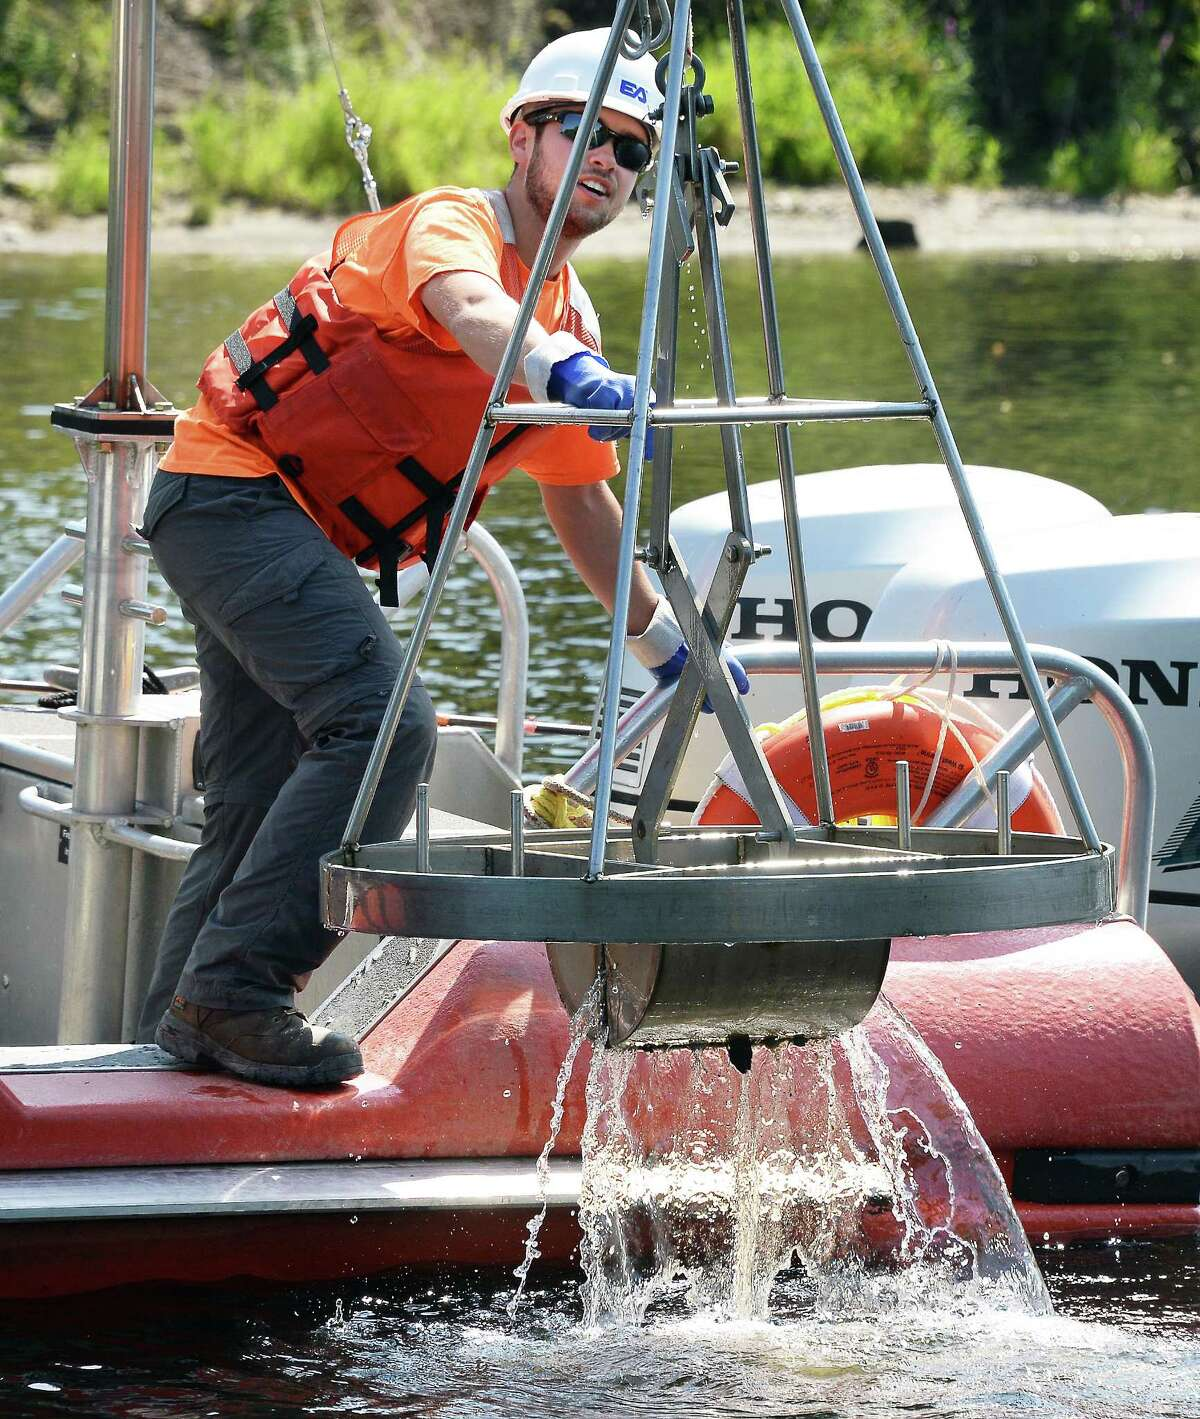 EA Engineering, Science and Technology geologist Justin Marra collects sediment samples from the upper Hudson River Wednesday August 30, 2017 in Moreau, NY. (John Carl D'Annibale / Times Union)